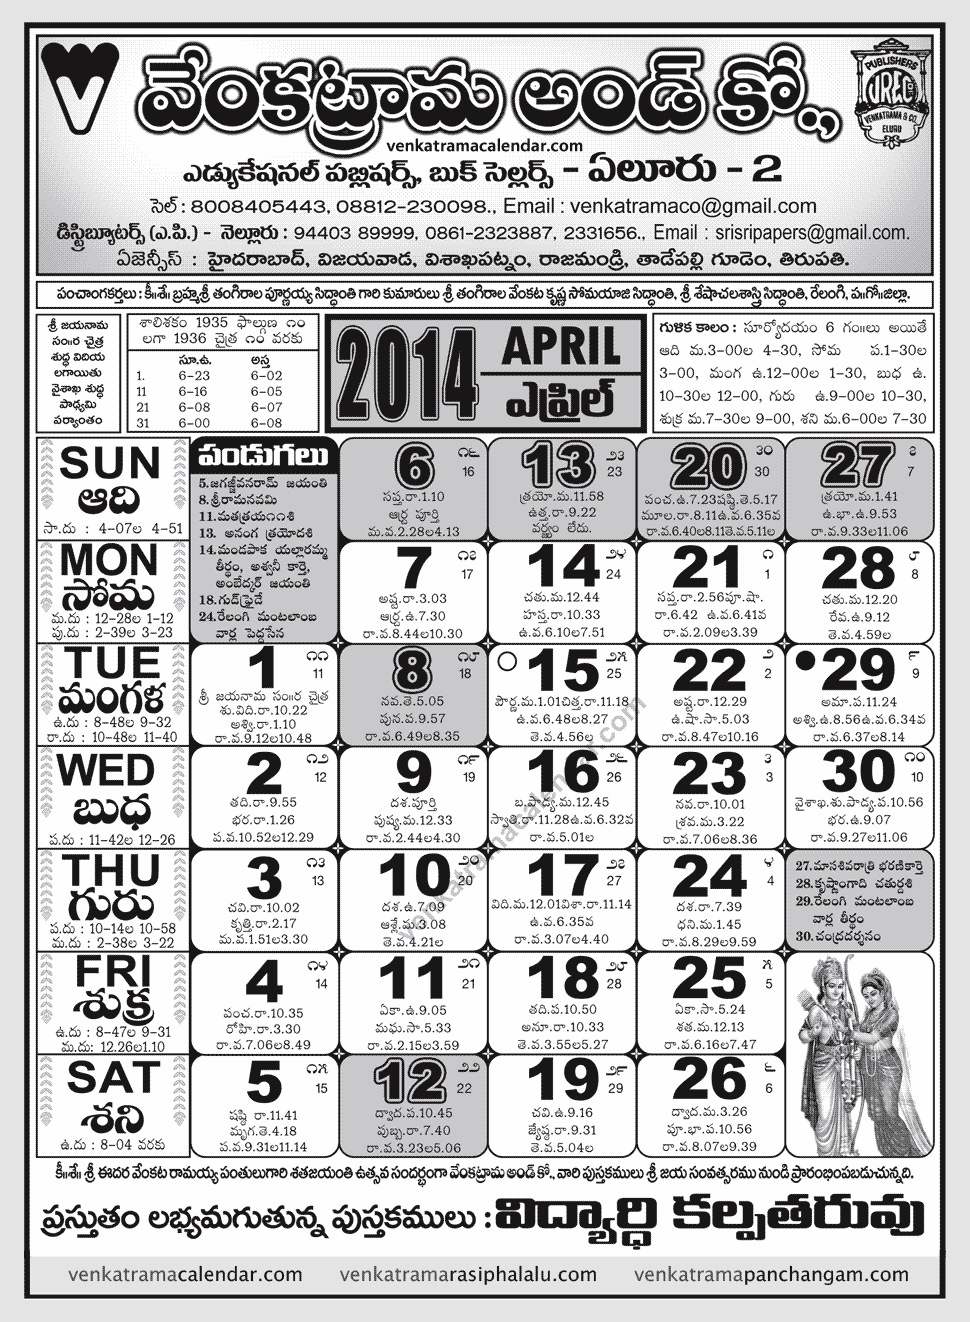 April Venkatrama Co Calendar : April venkatrama co telugu calendar with festivals